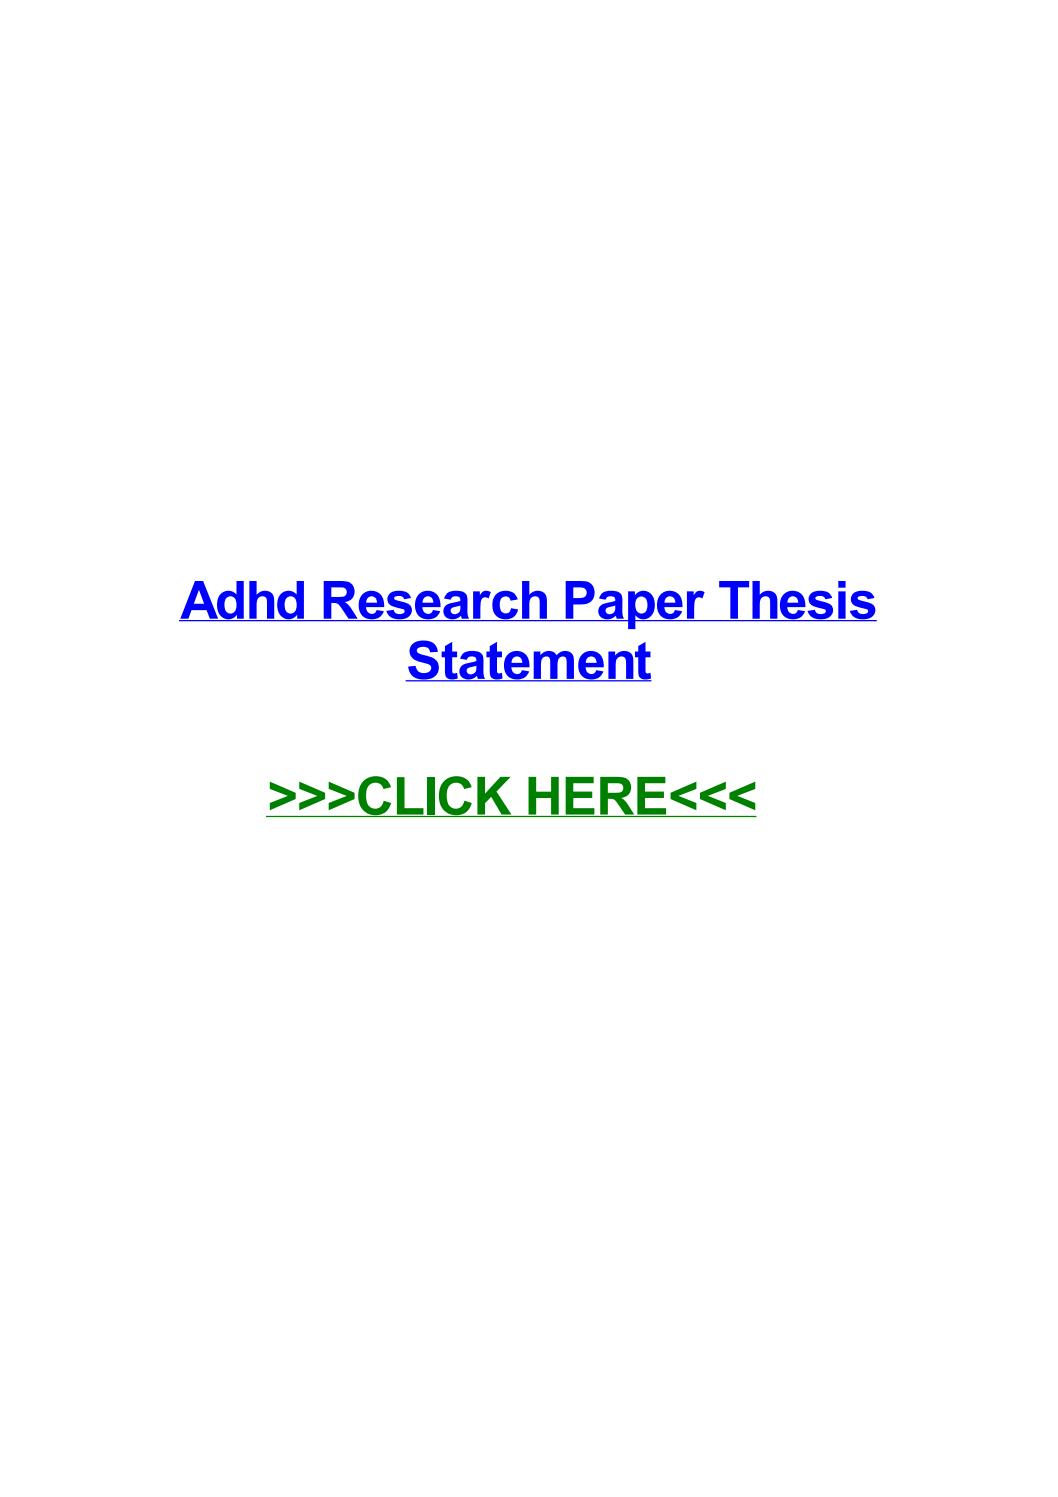 013 Adhd Research Paper Thesis Statement Page 1 Fantastic Full